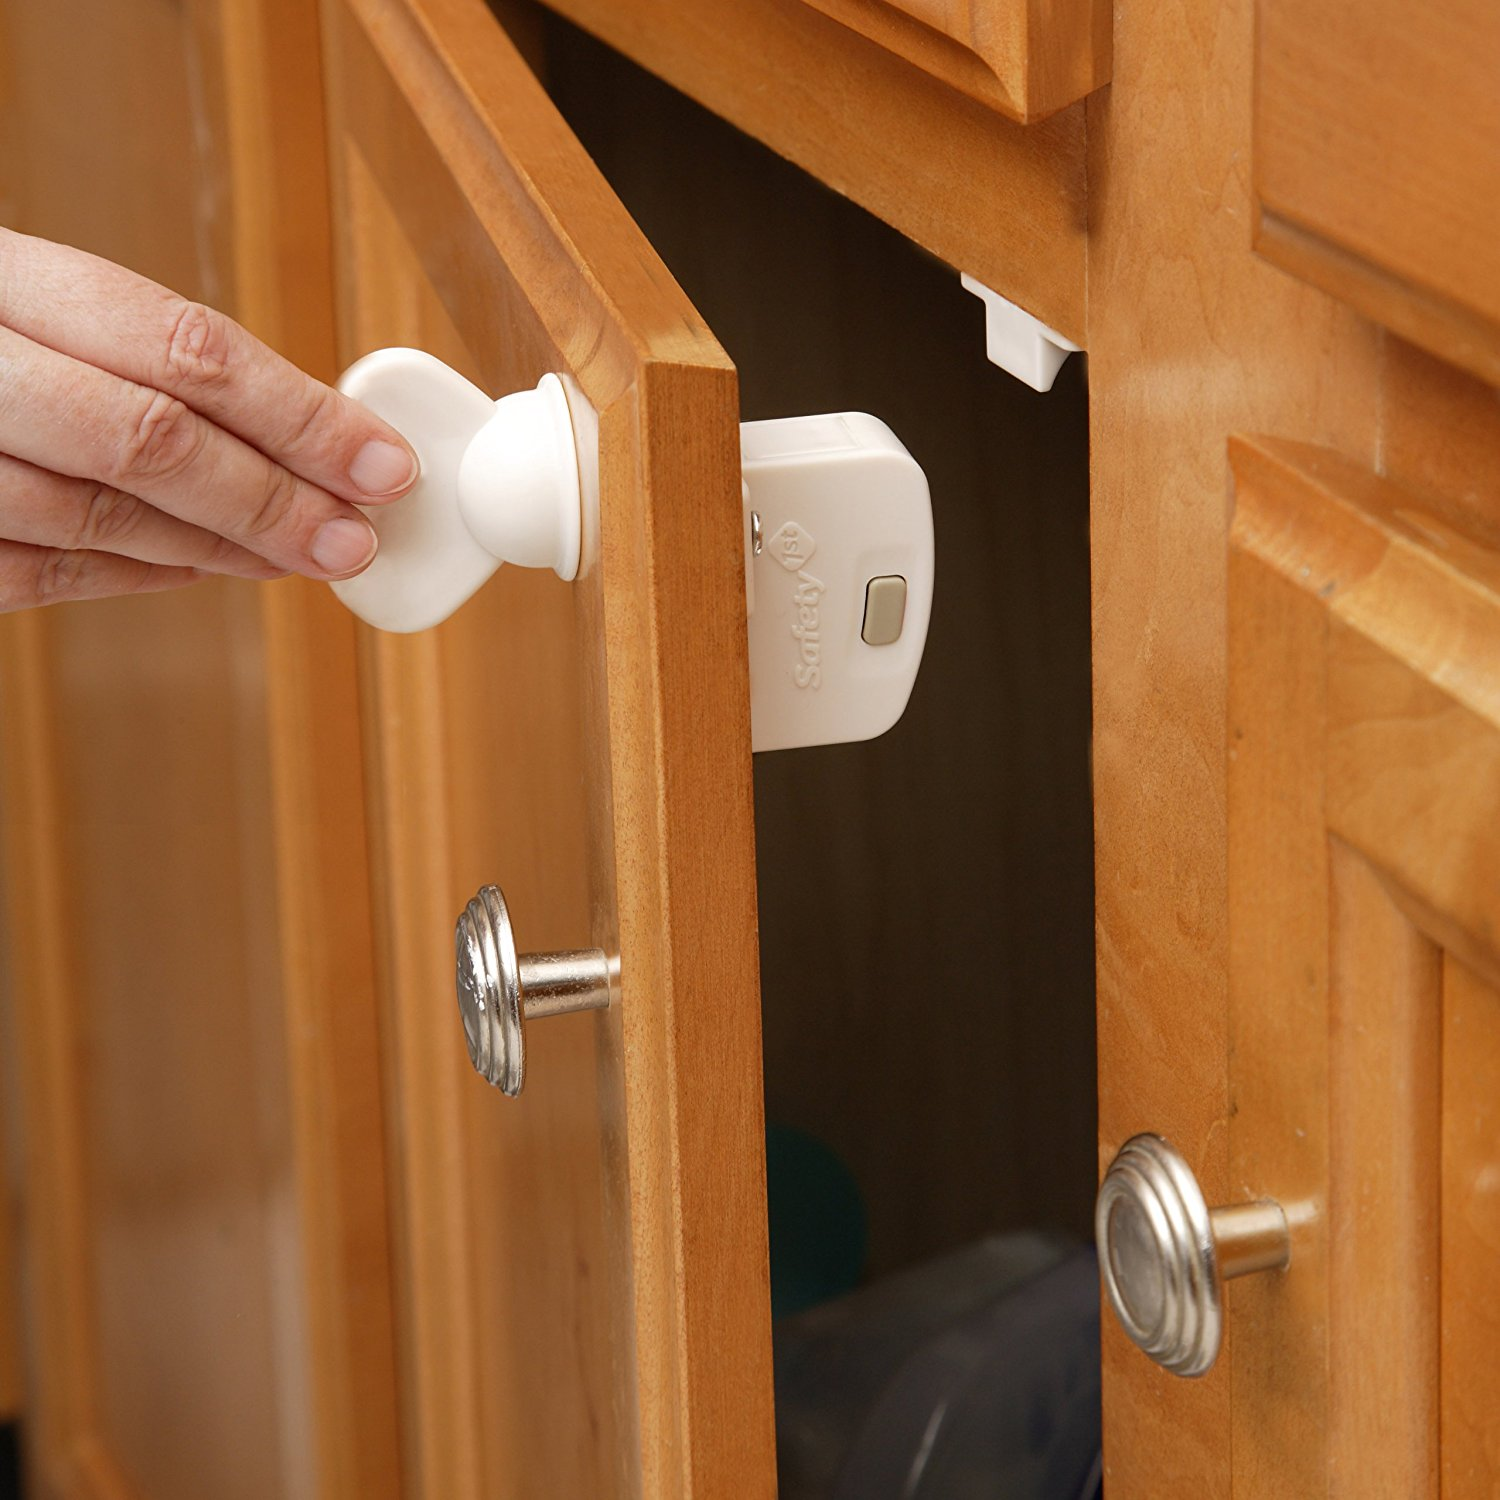 Magnetic Cabinet Locks, 8 Locks + 1 Key, Only unlocks with powerful Magnetic key By Safety 1st Ship from US by Safety 1st